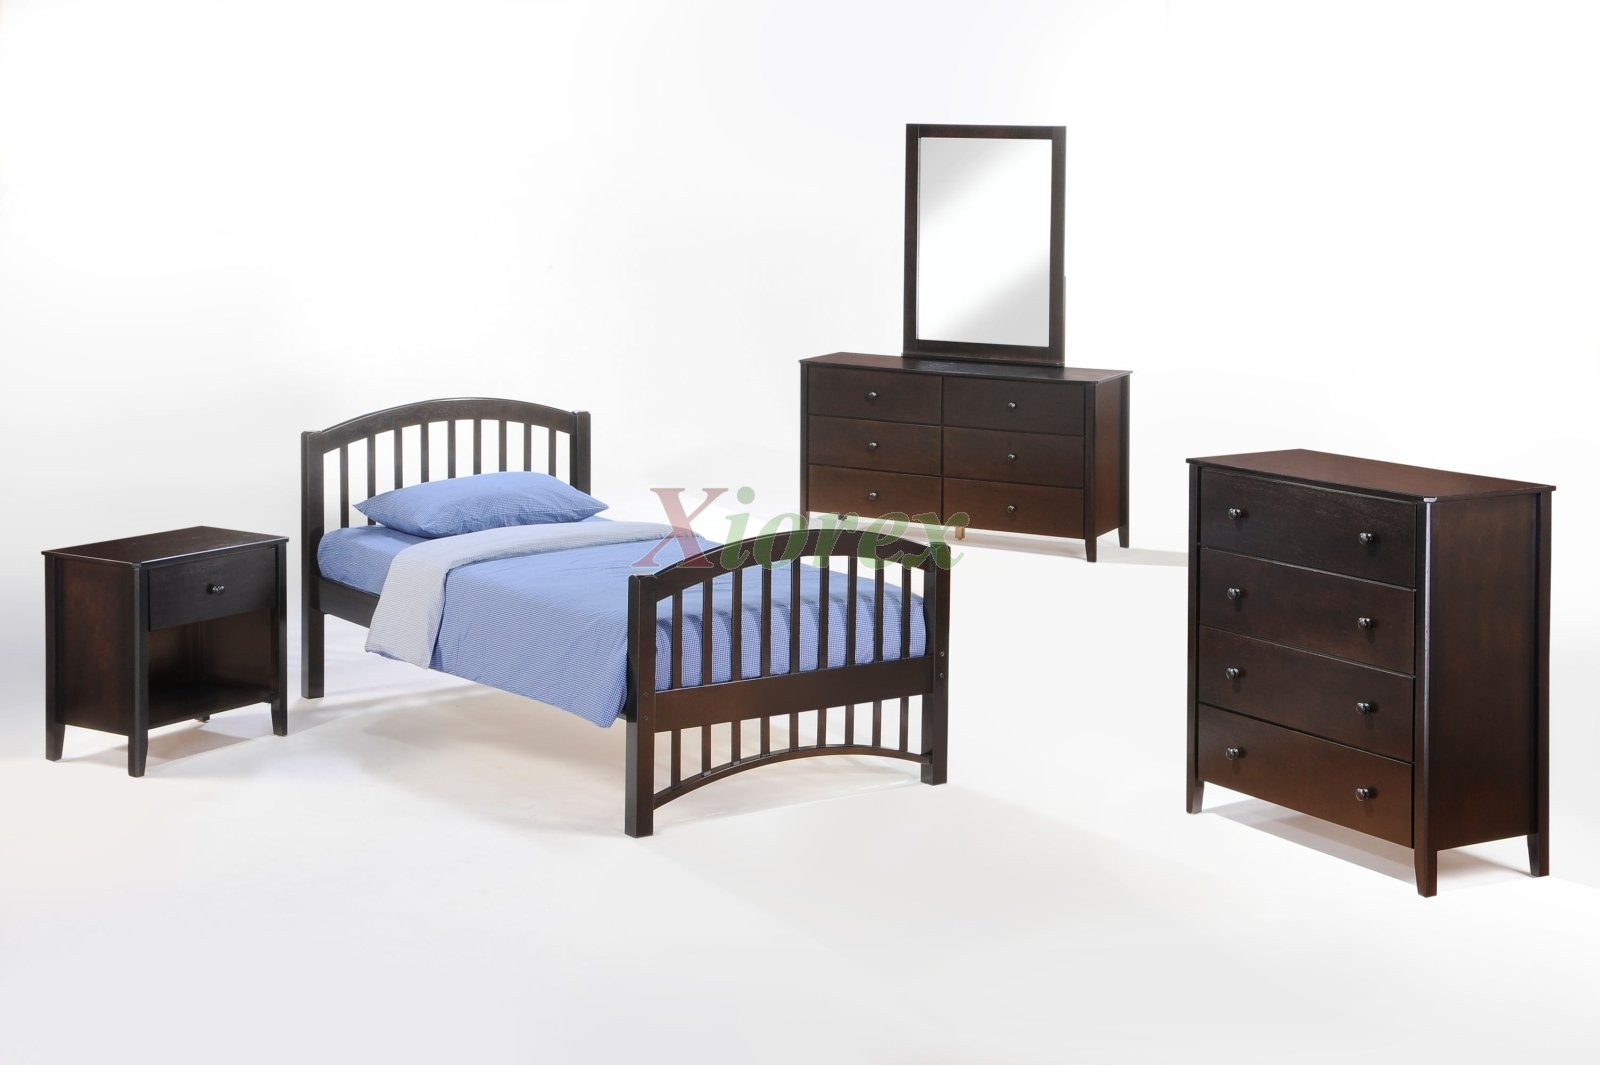 Zest Molasses Bed Night Day Molasses Bed Sets For Kids Teenagers